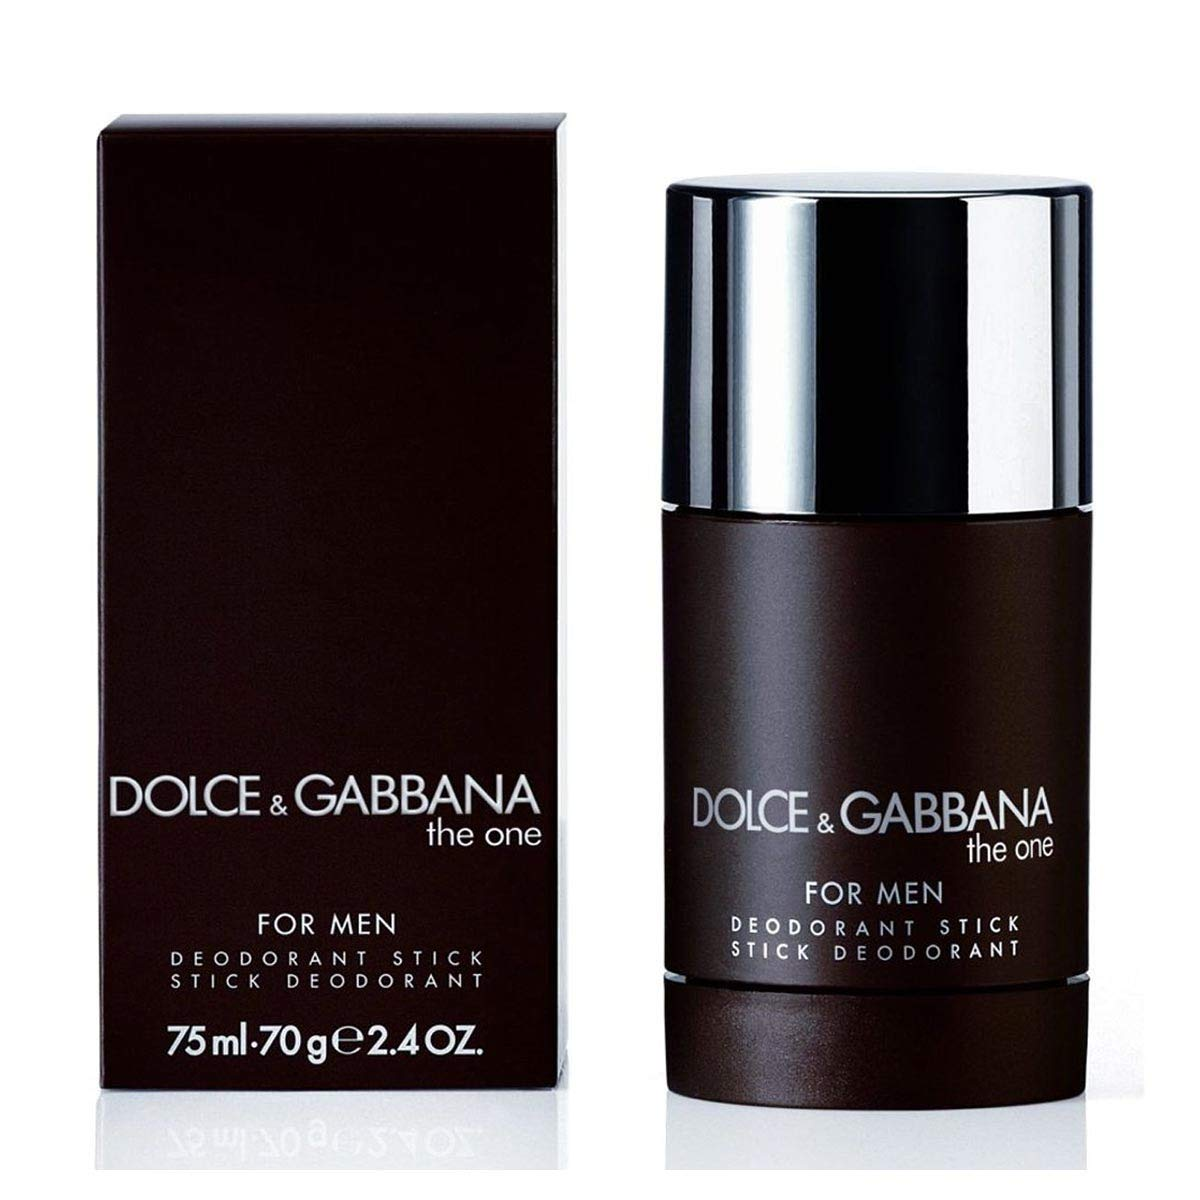 Dolce & Gabbana The One For Men Deodorant Stick 70g